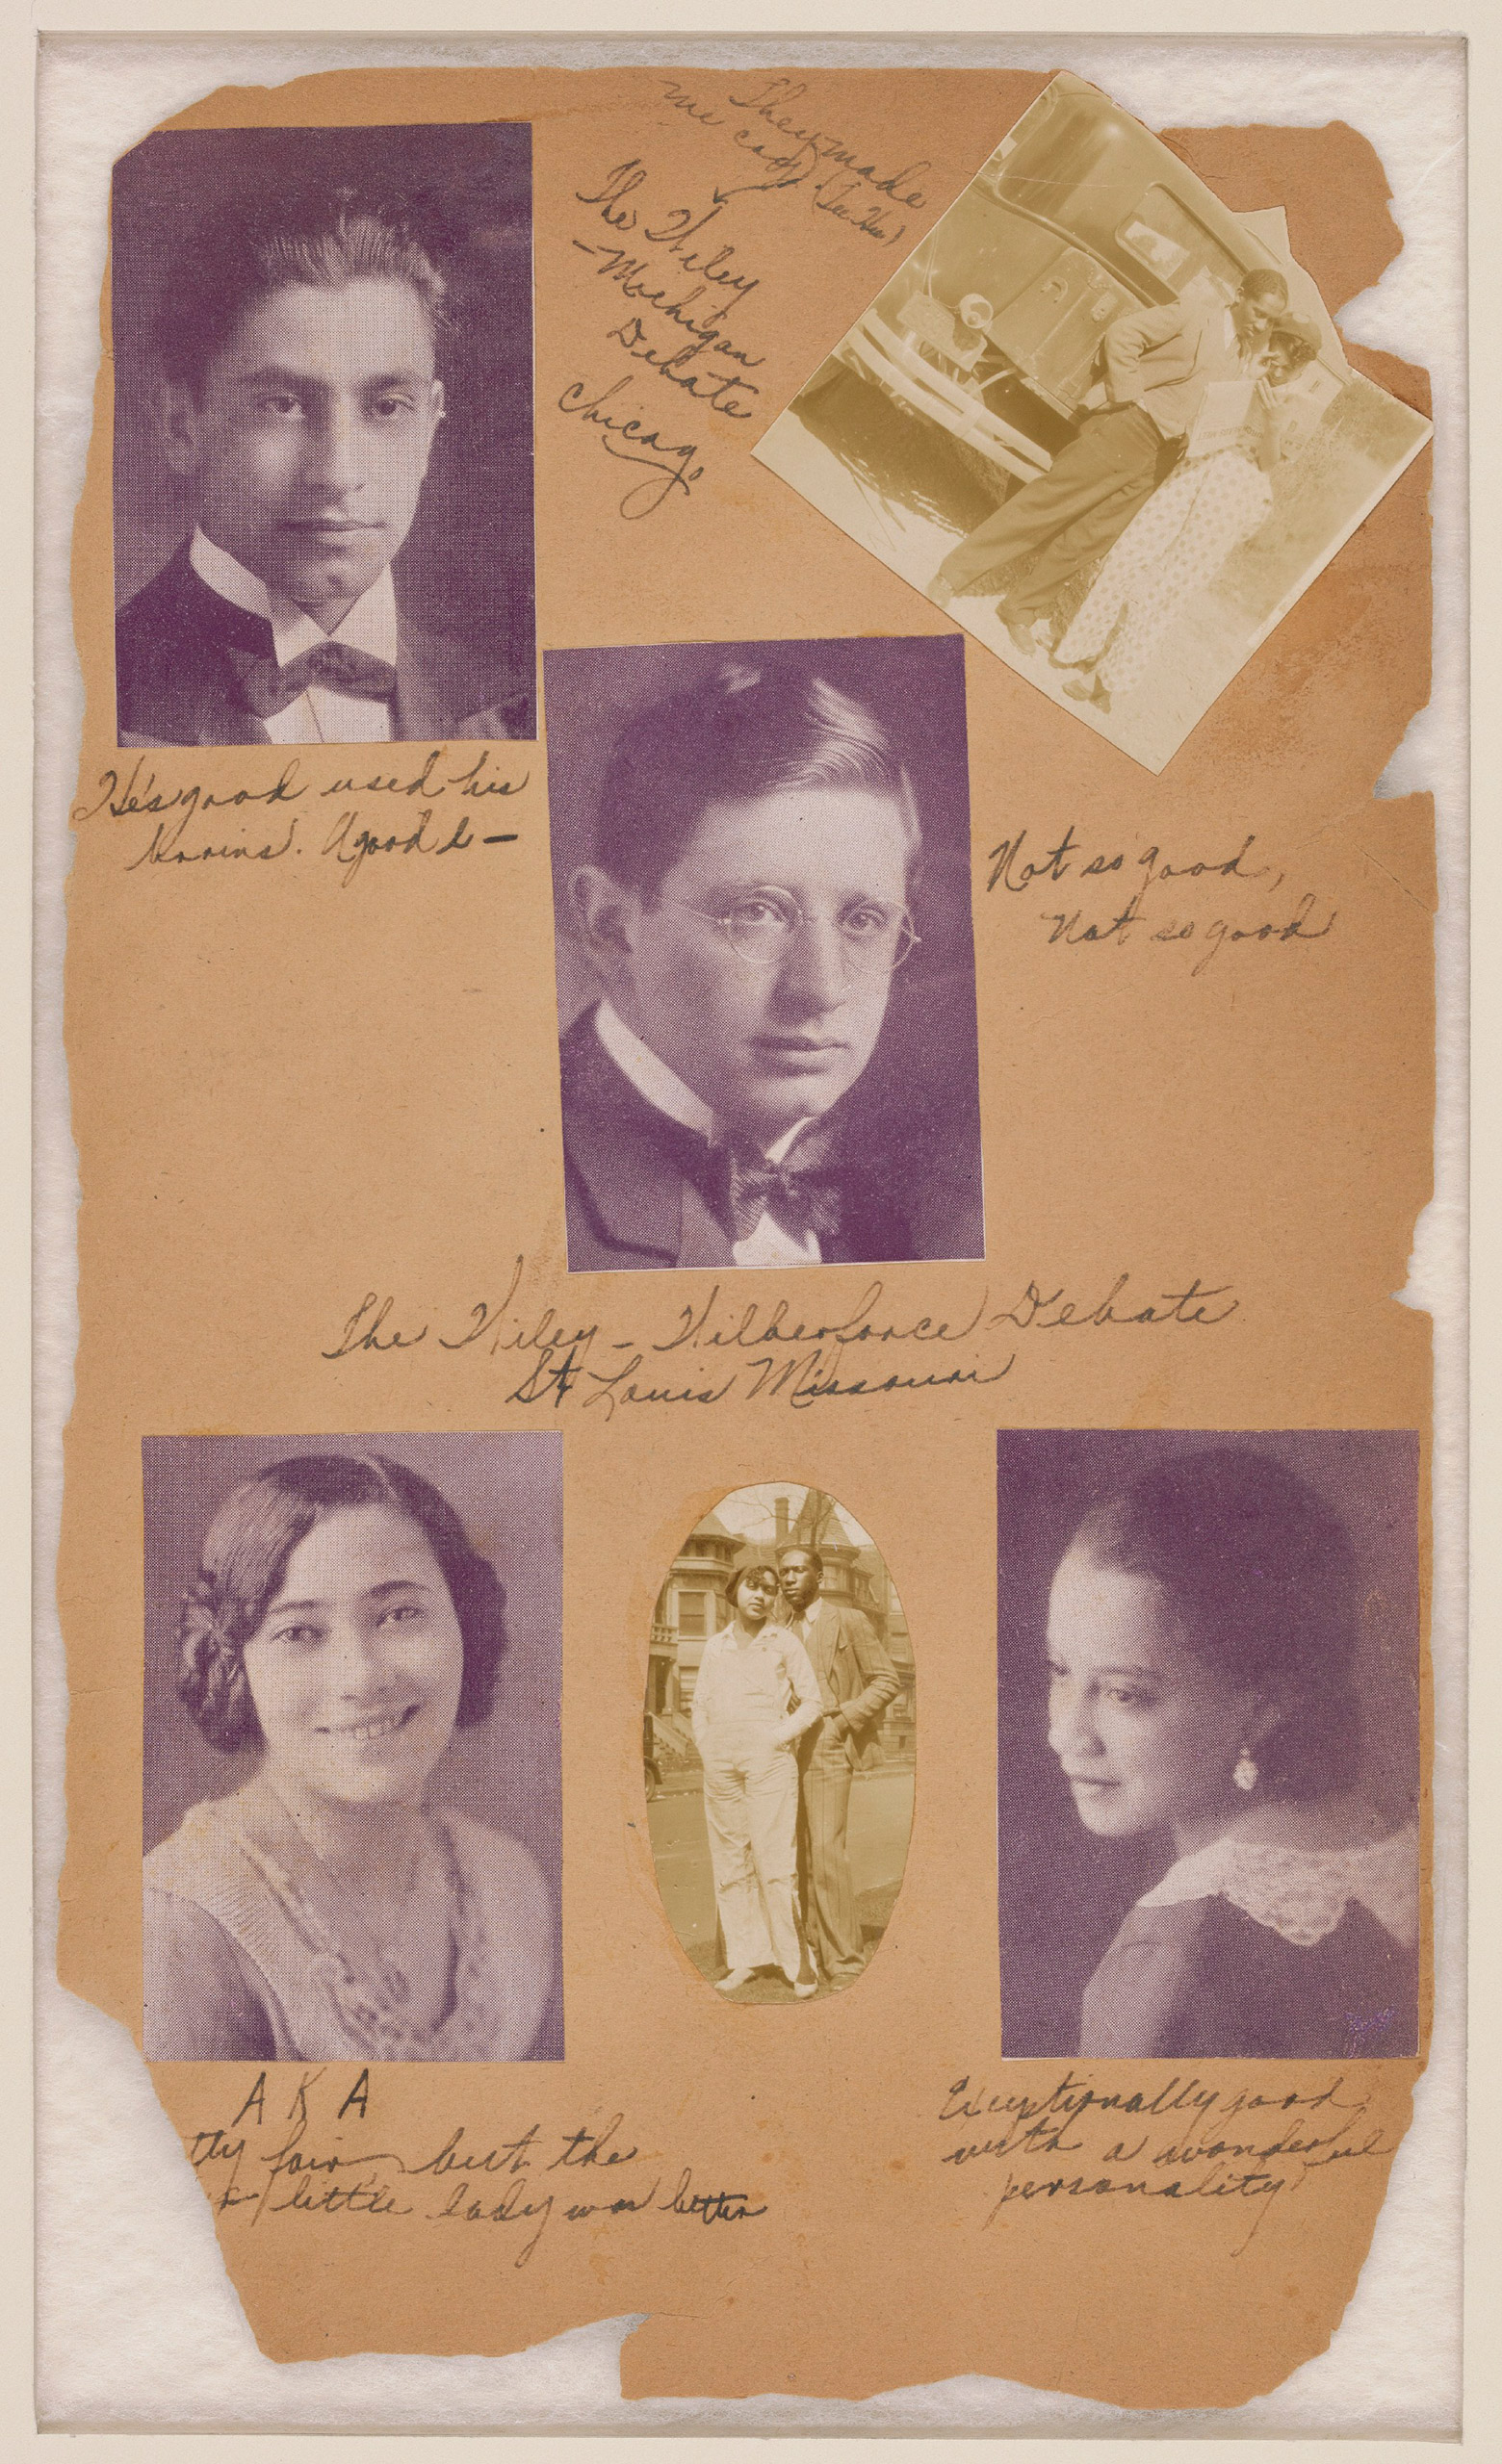 Scrapbook page about the Wiley College Debate Team, 1929-1930.